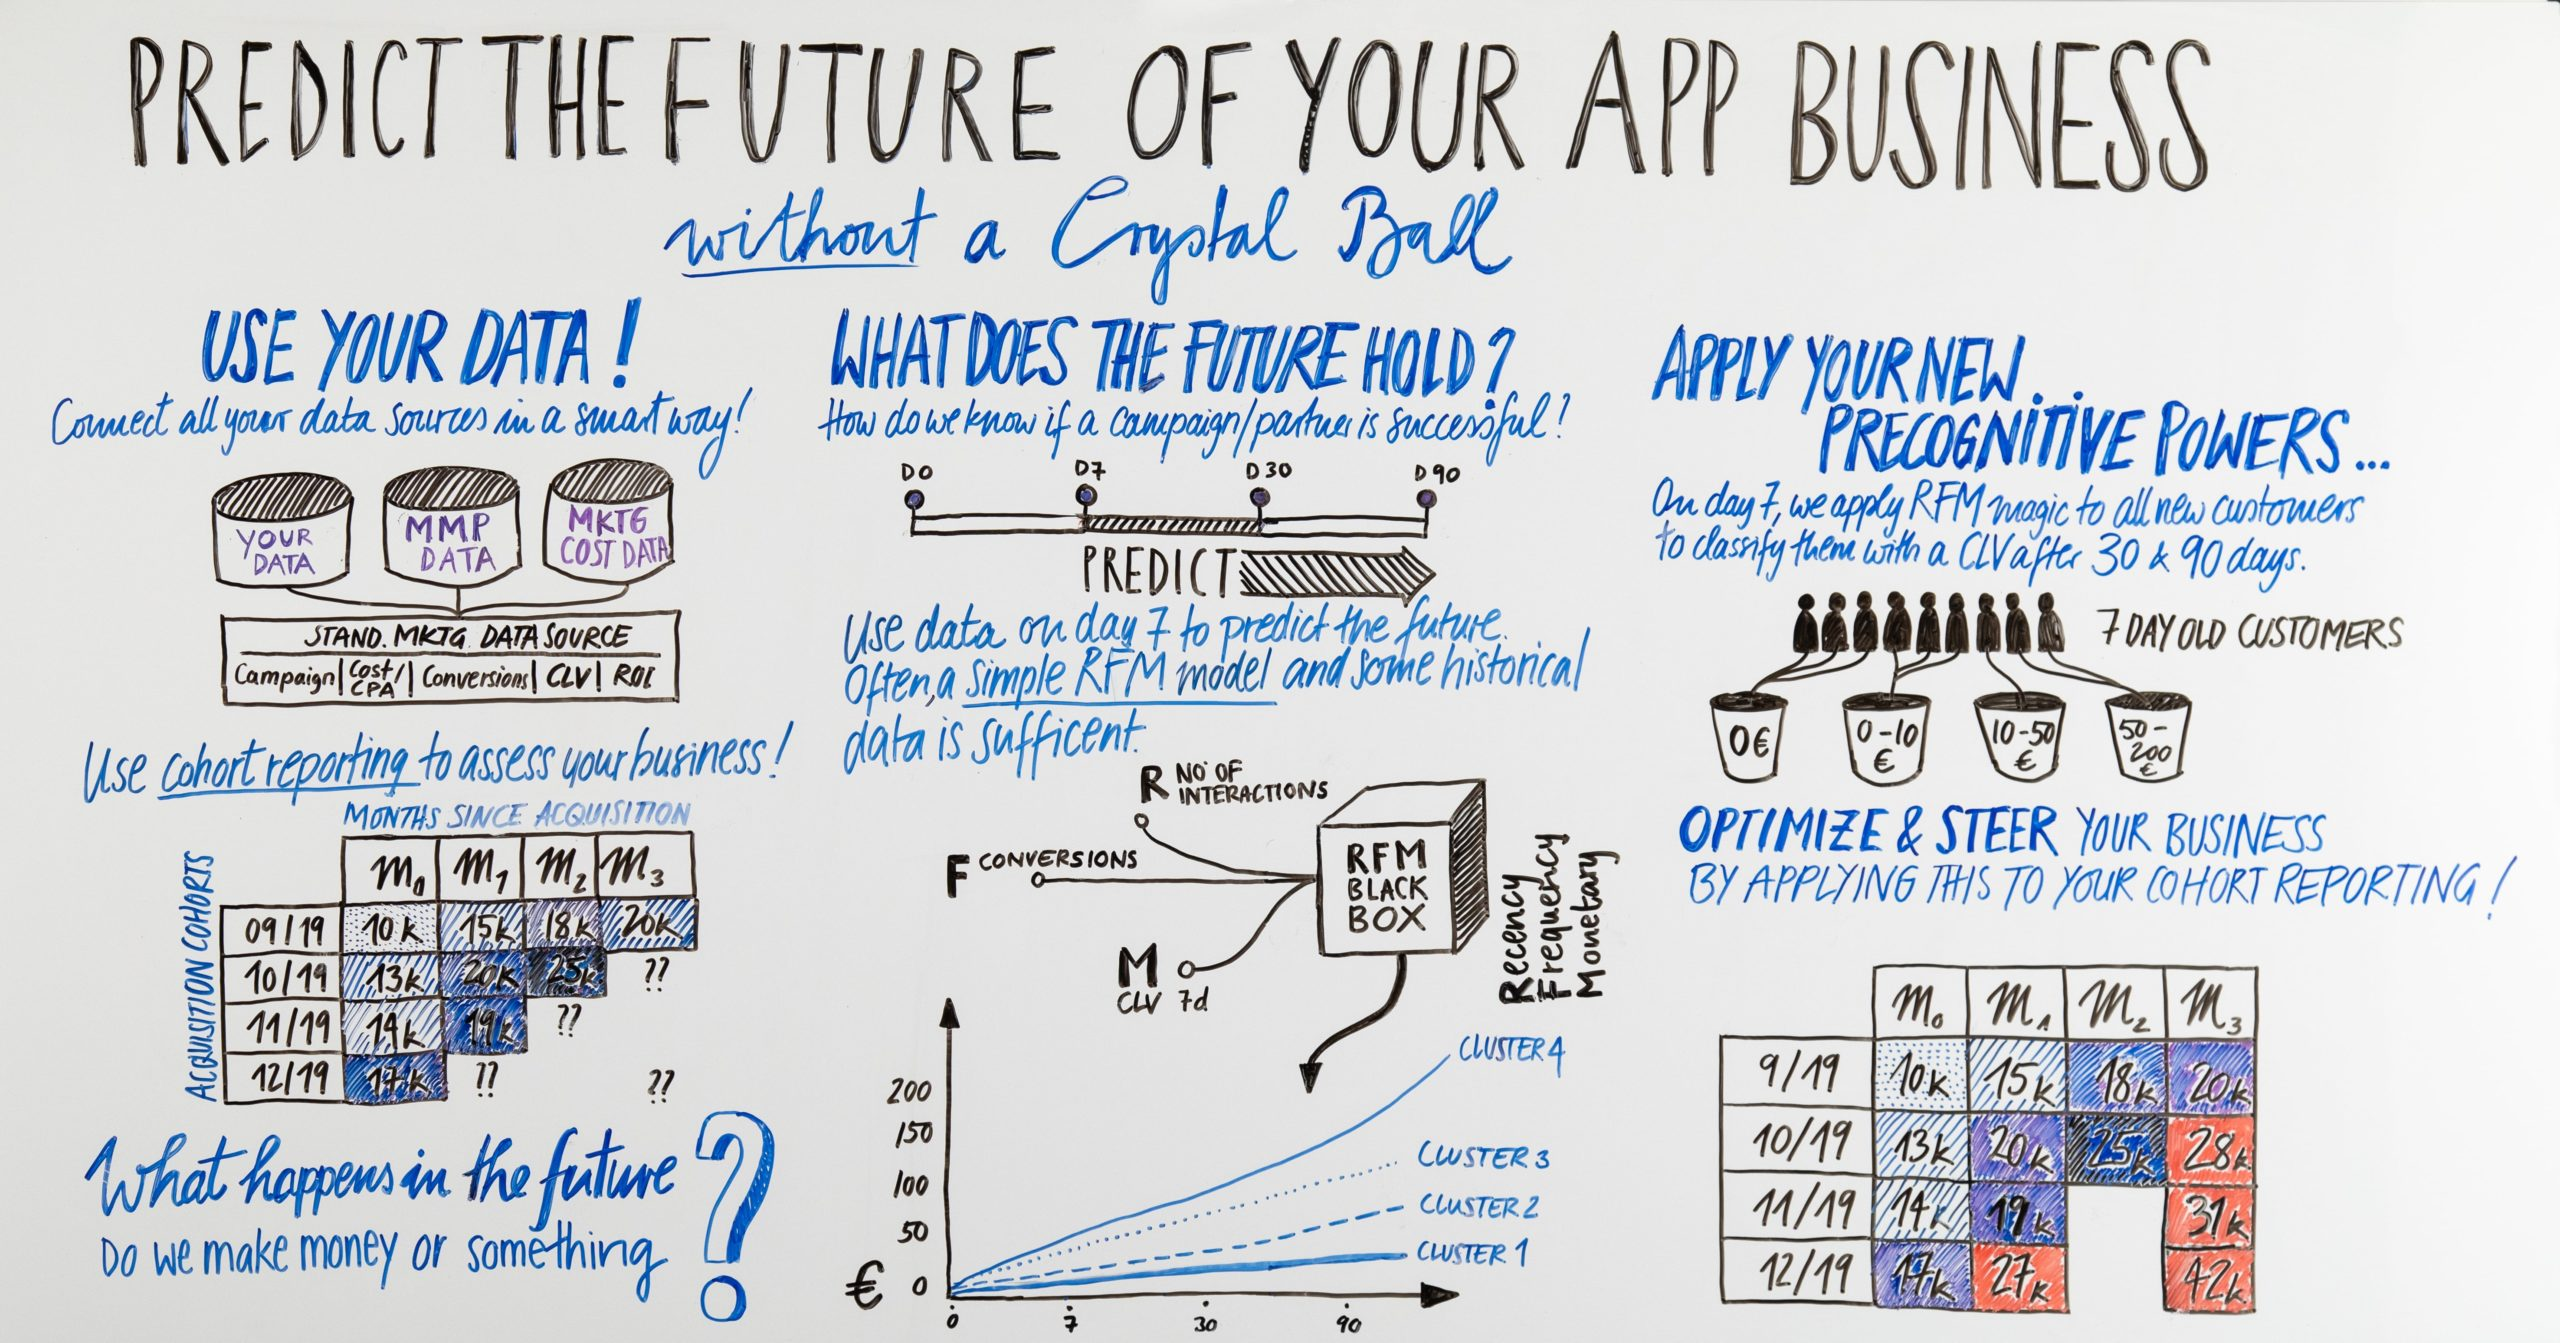 predict the future of your app business